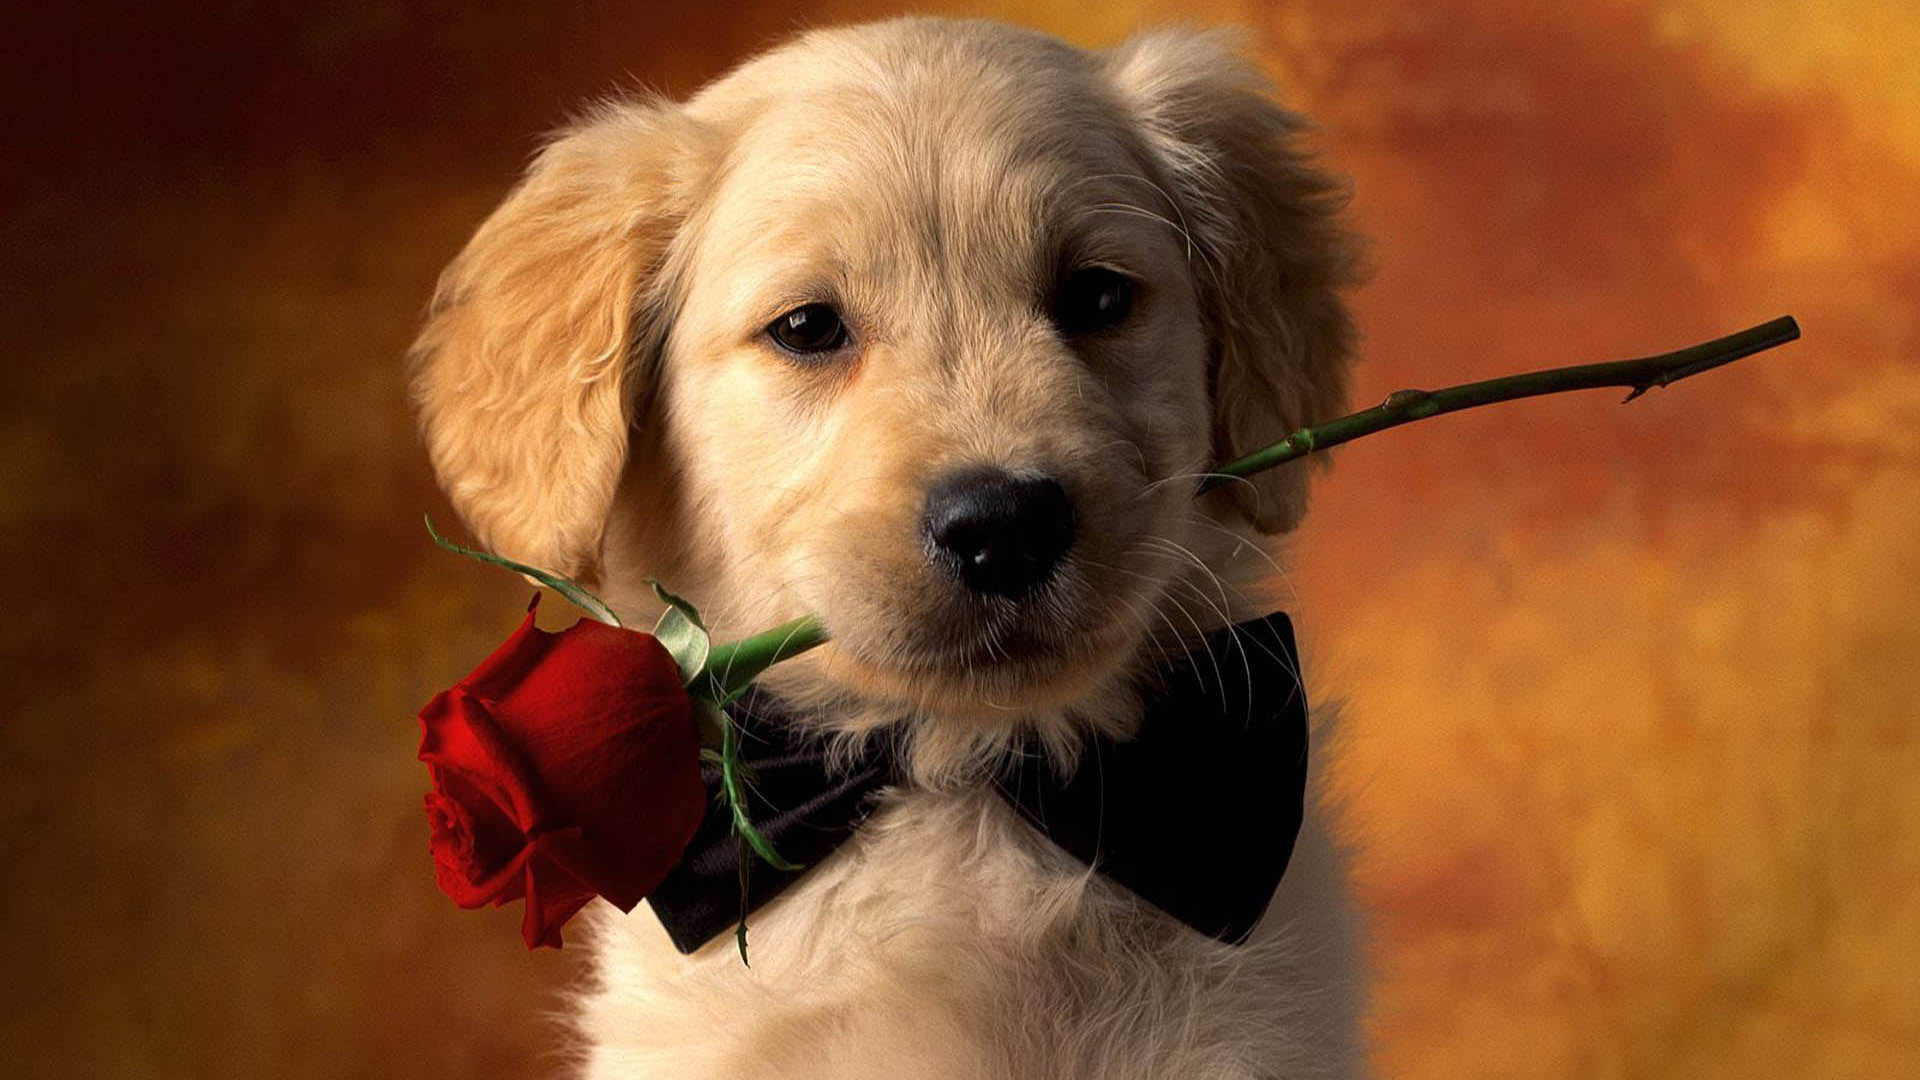 dog wallpapers flowers